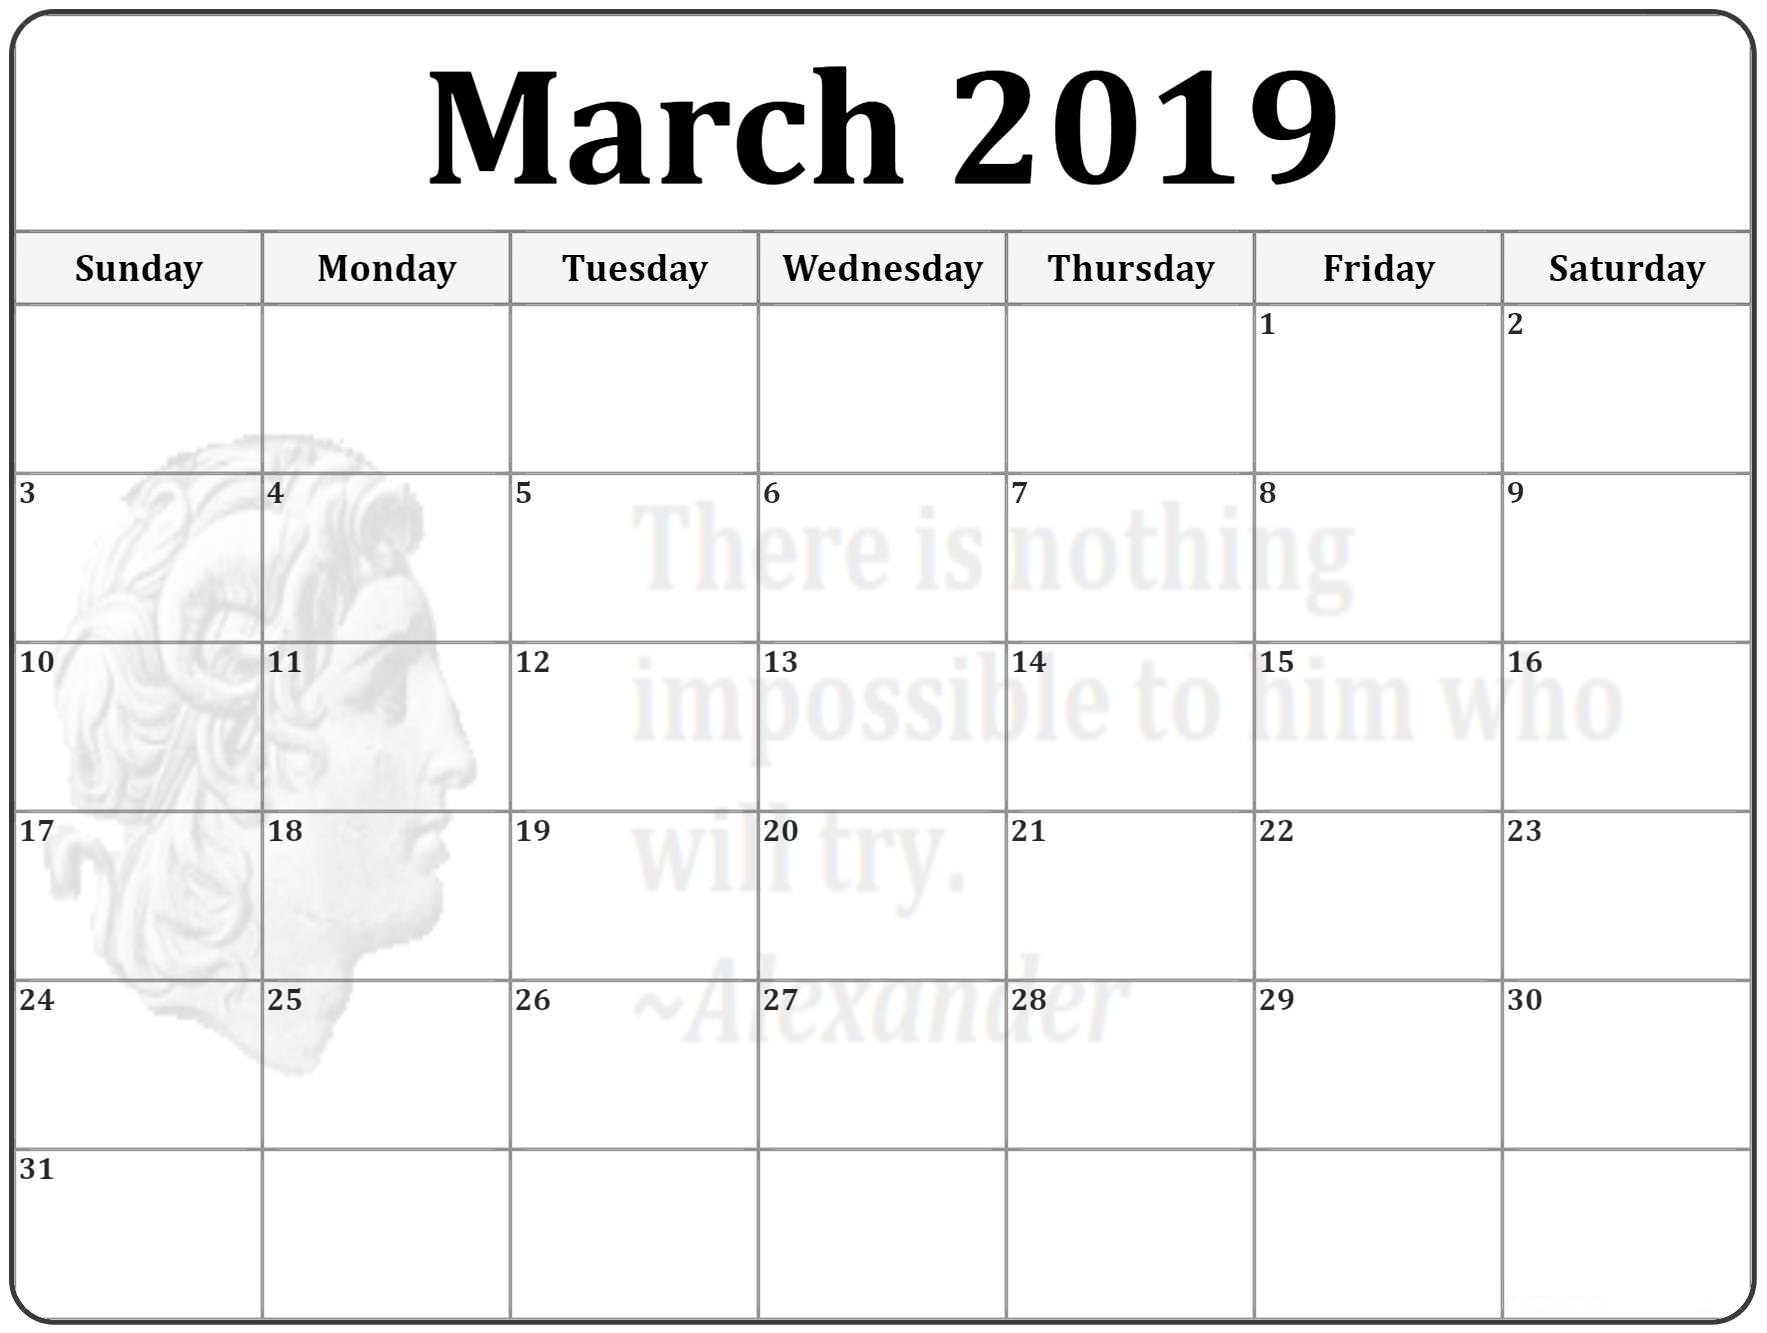 March 2019 Printable Calendar Pdf, Excel And Word – March 2019 Calendar 2019 Schedule